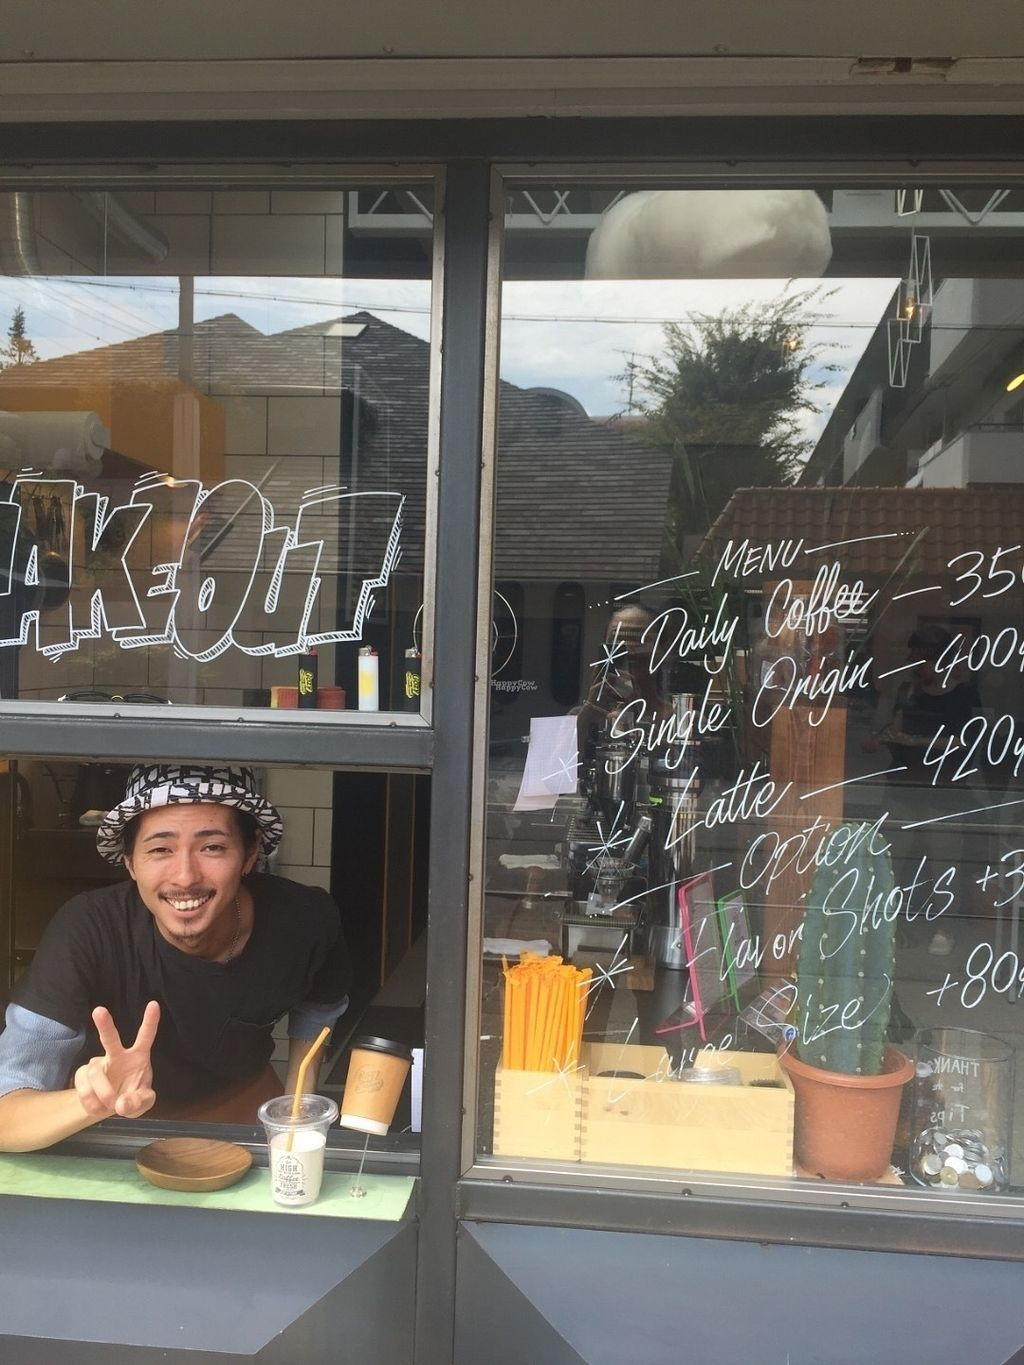 """Photo of Soleil Organic Bakery  by <a href=""""/members/profile/Vegeiko"""">Vegeiko</a> <br/>Cozy coffee spot - two doors away coffee shop to eat Soleil breads! <br/> September 9, 2016  - <a href='/contact/abuse/image/79847/174608'>Report</a>"""